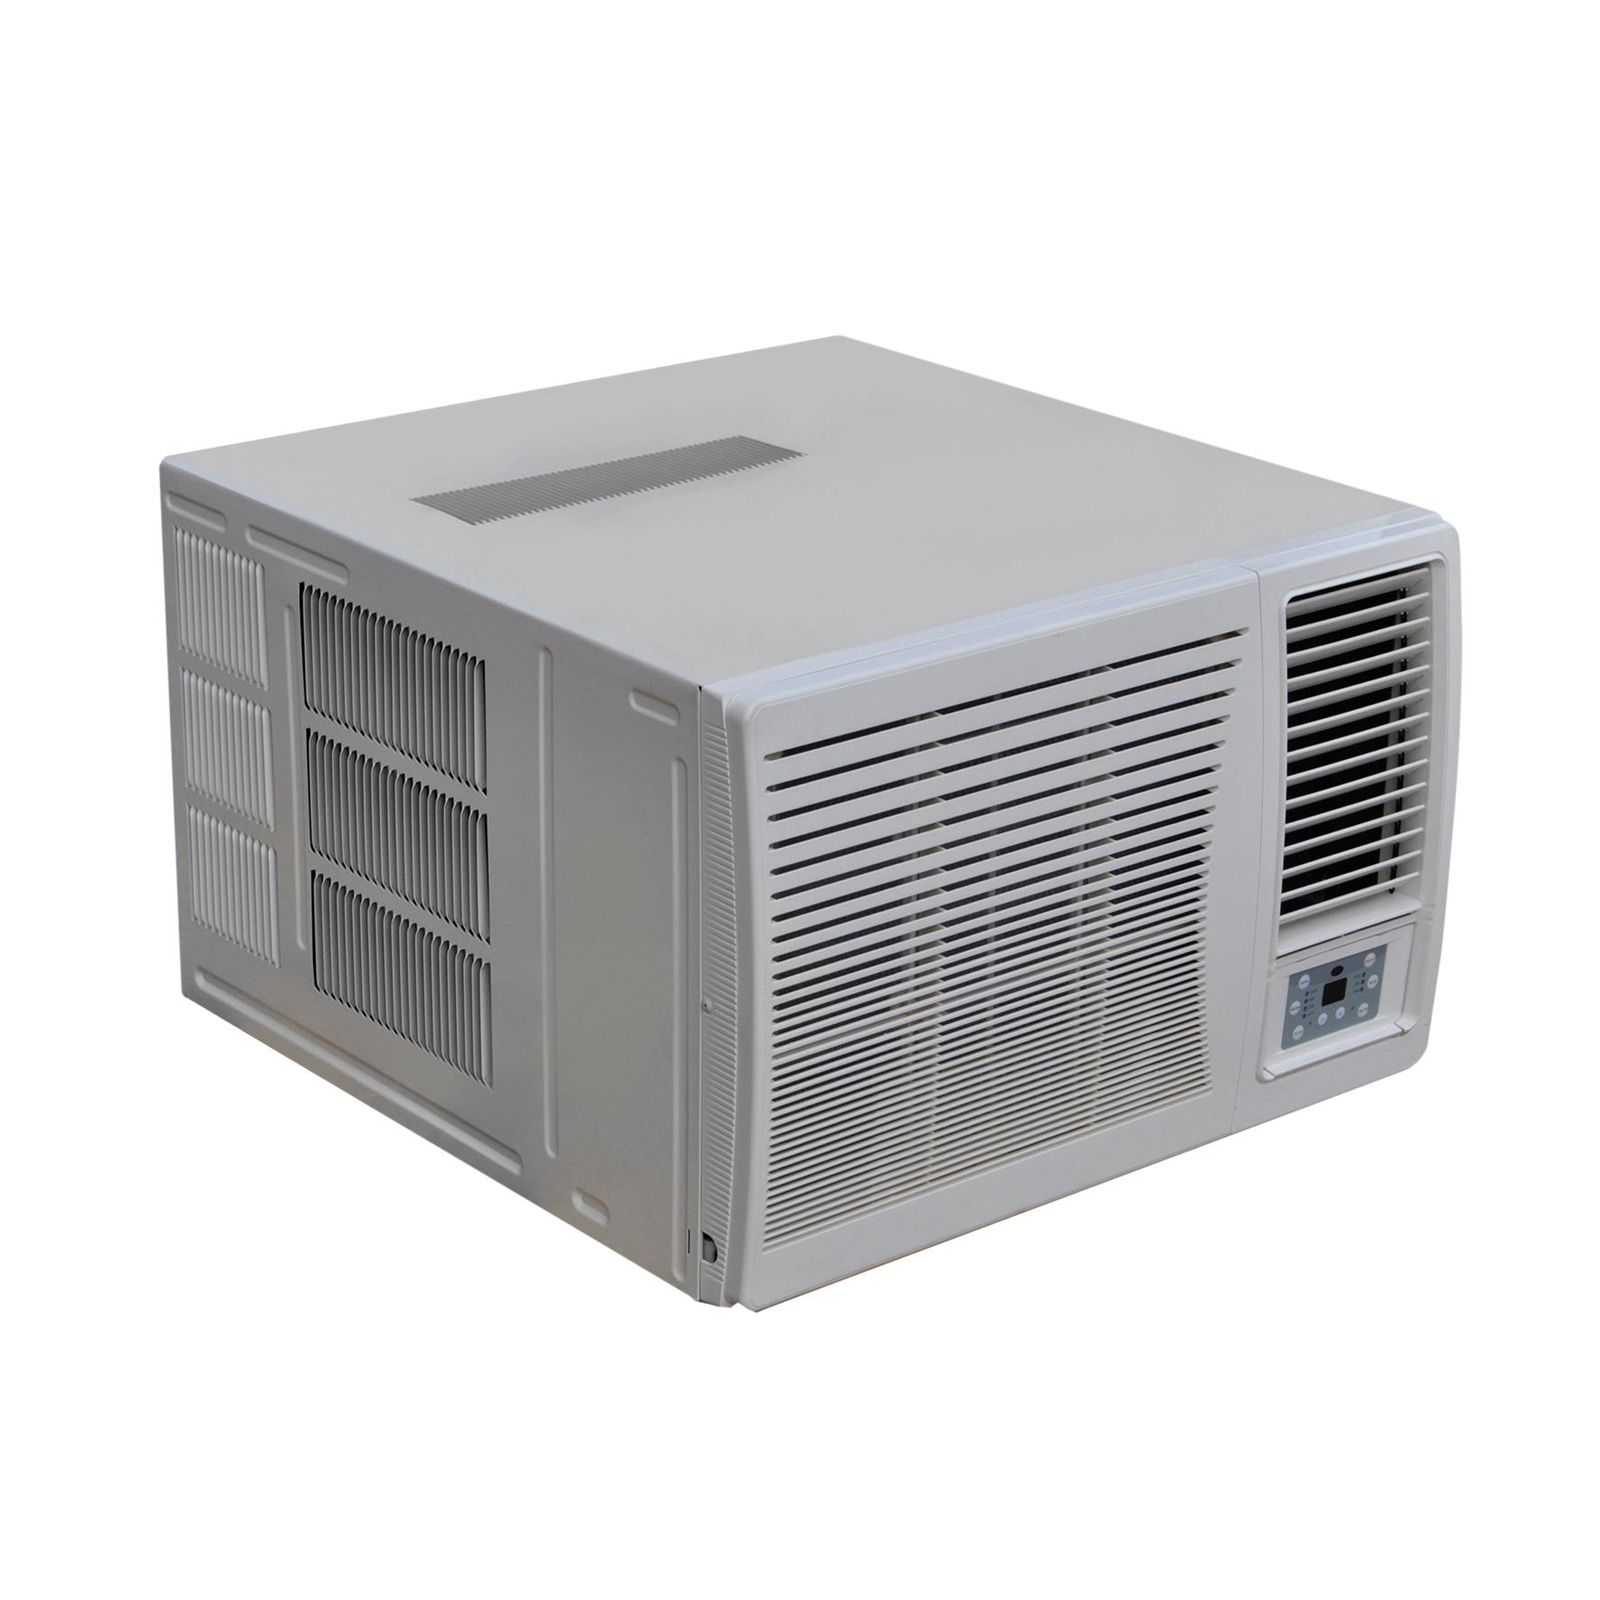 Prem i air eh0537 window unit air conditioner cooling only for 12000 btu window air conditioner room size